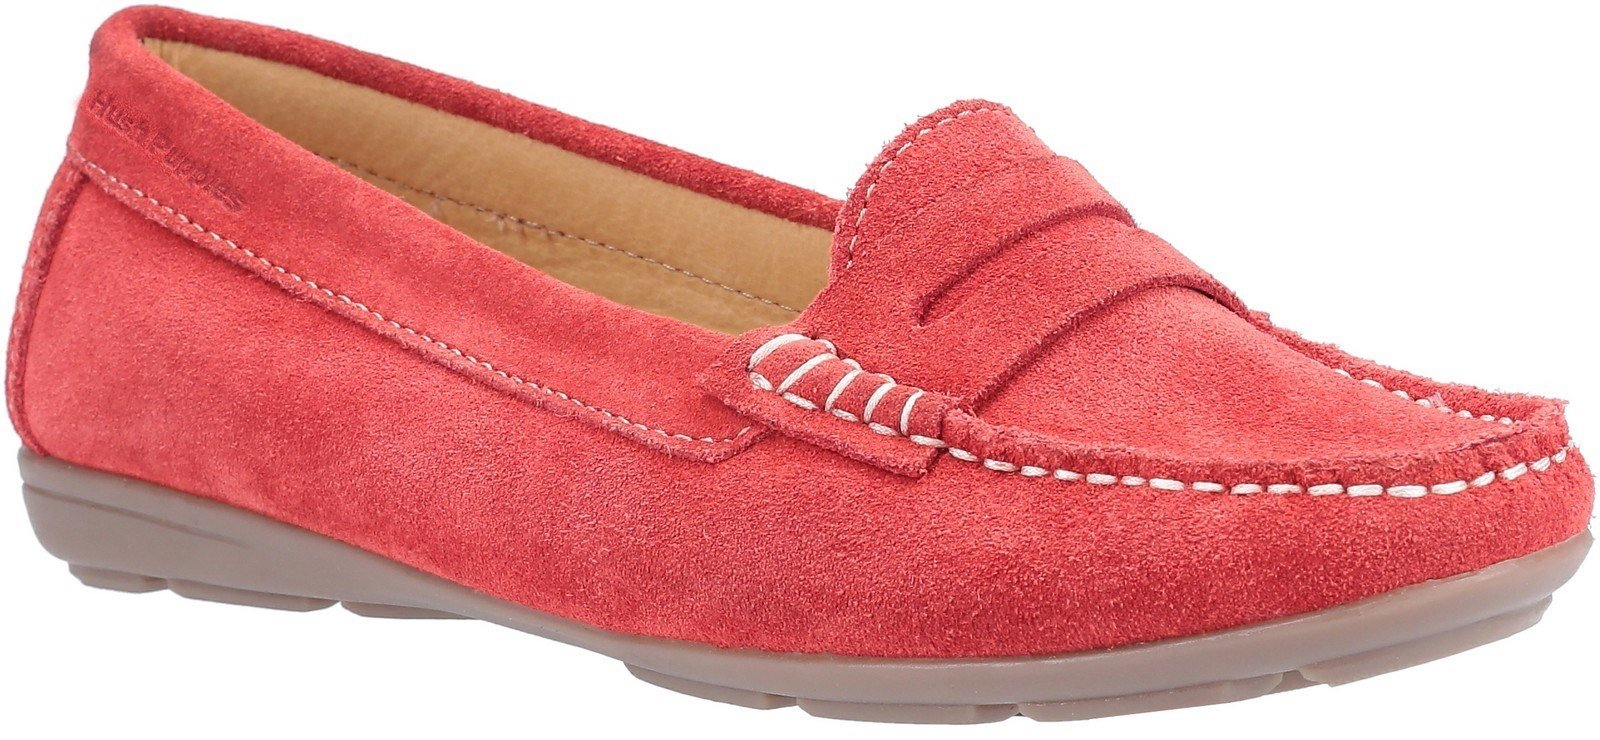 Hush Puppies Women's Margot Slip On Loafer Various Colours 30238 - Red 3